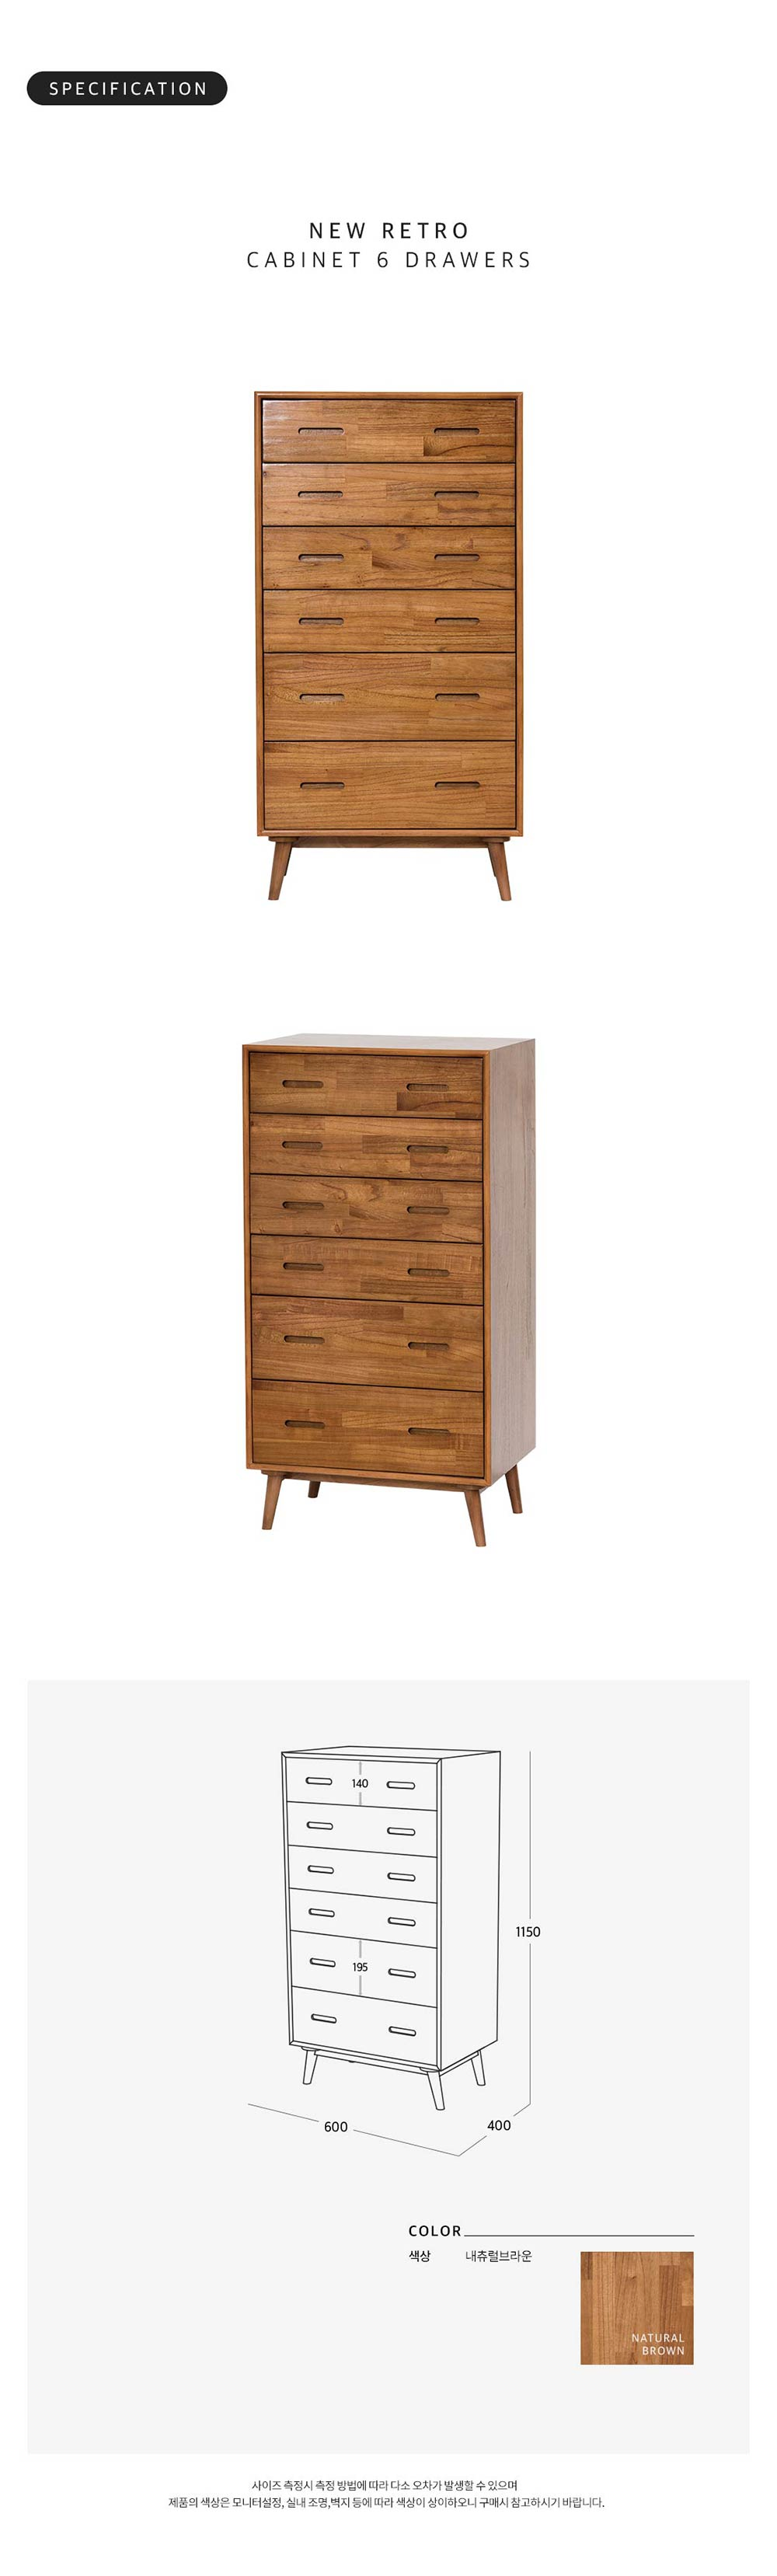 New_Retro_6_Drawers_Storage_Chest_Singapore_Furniture_Online_Specification_1_by_born_in_colour